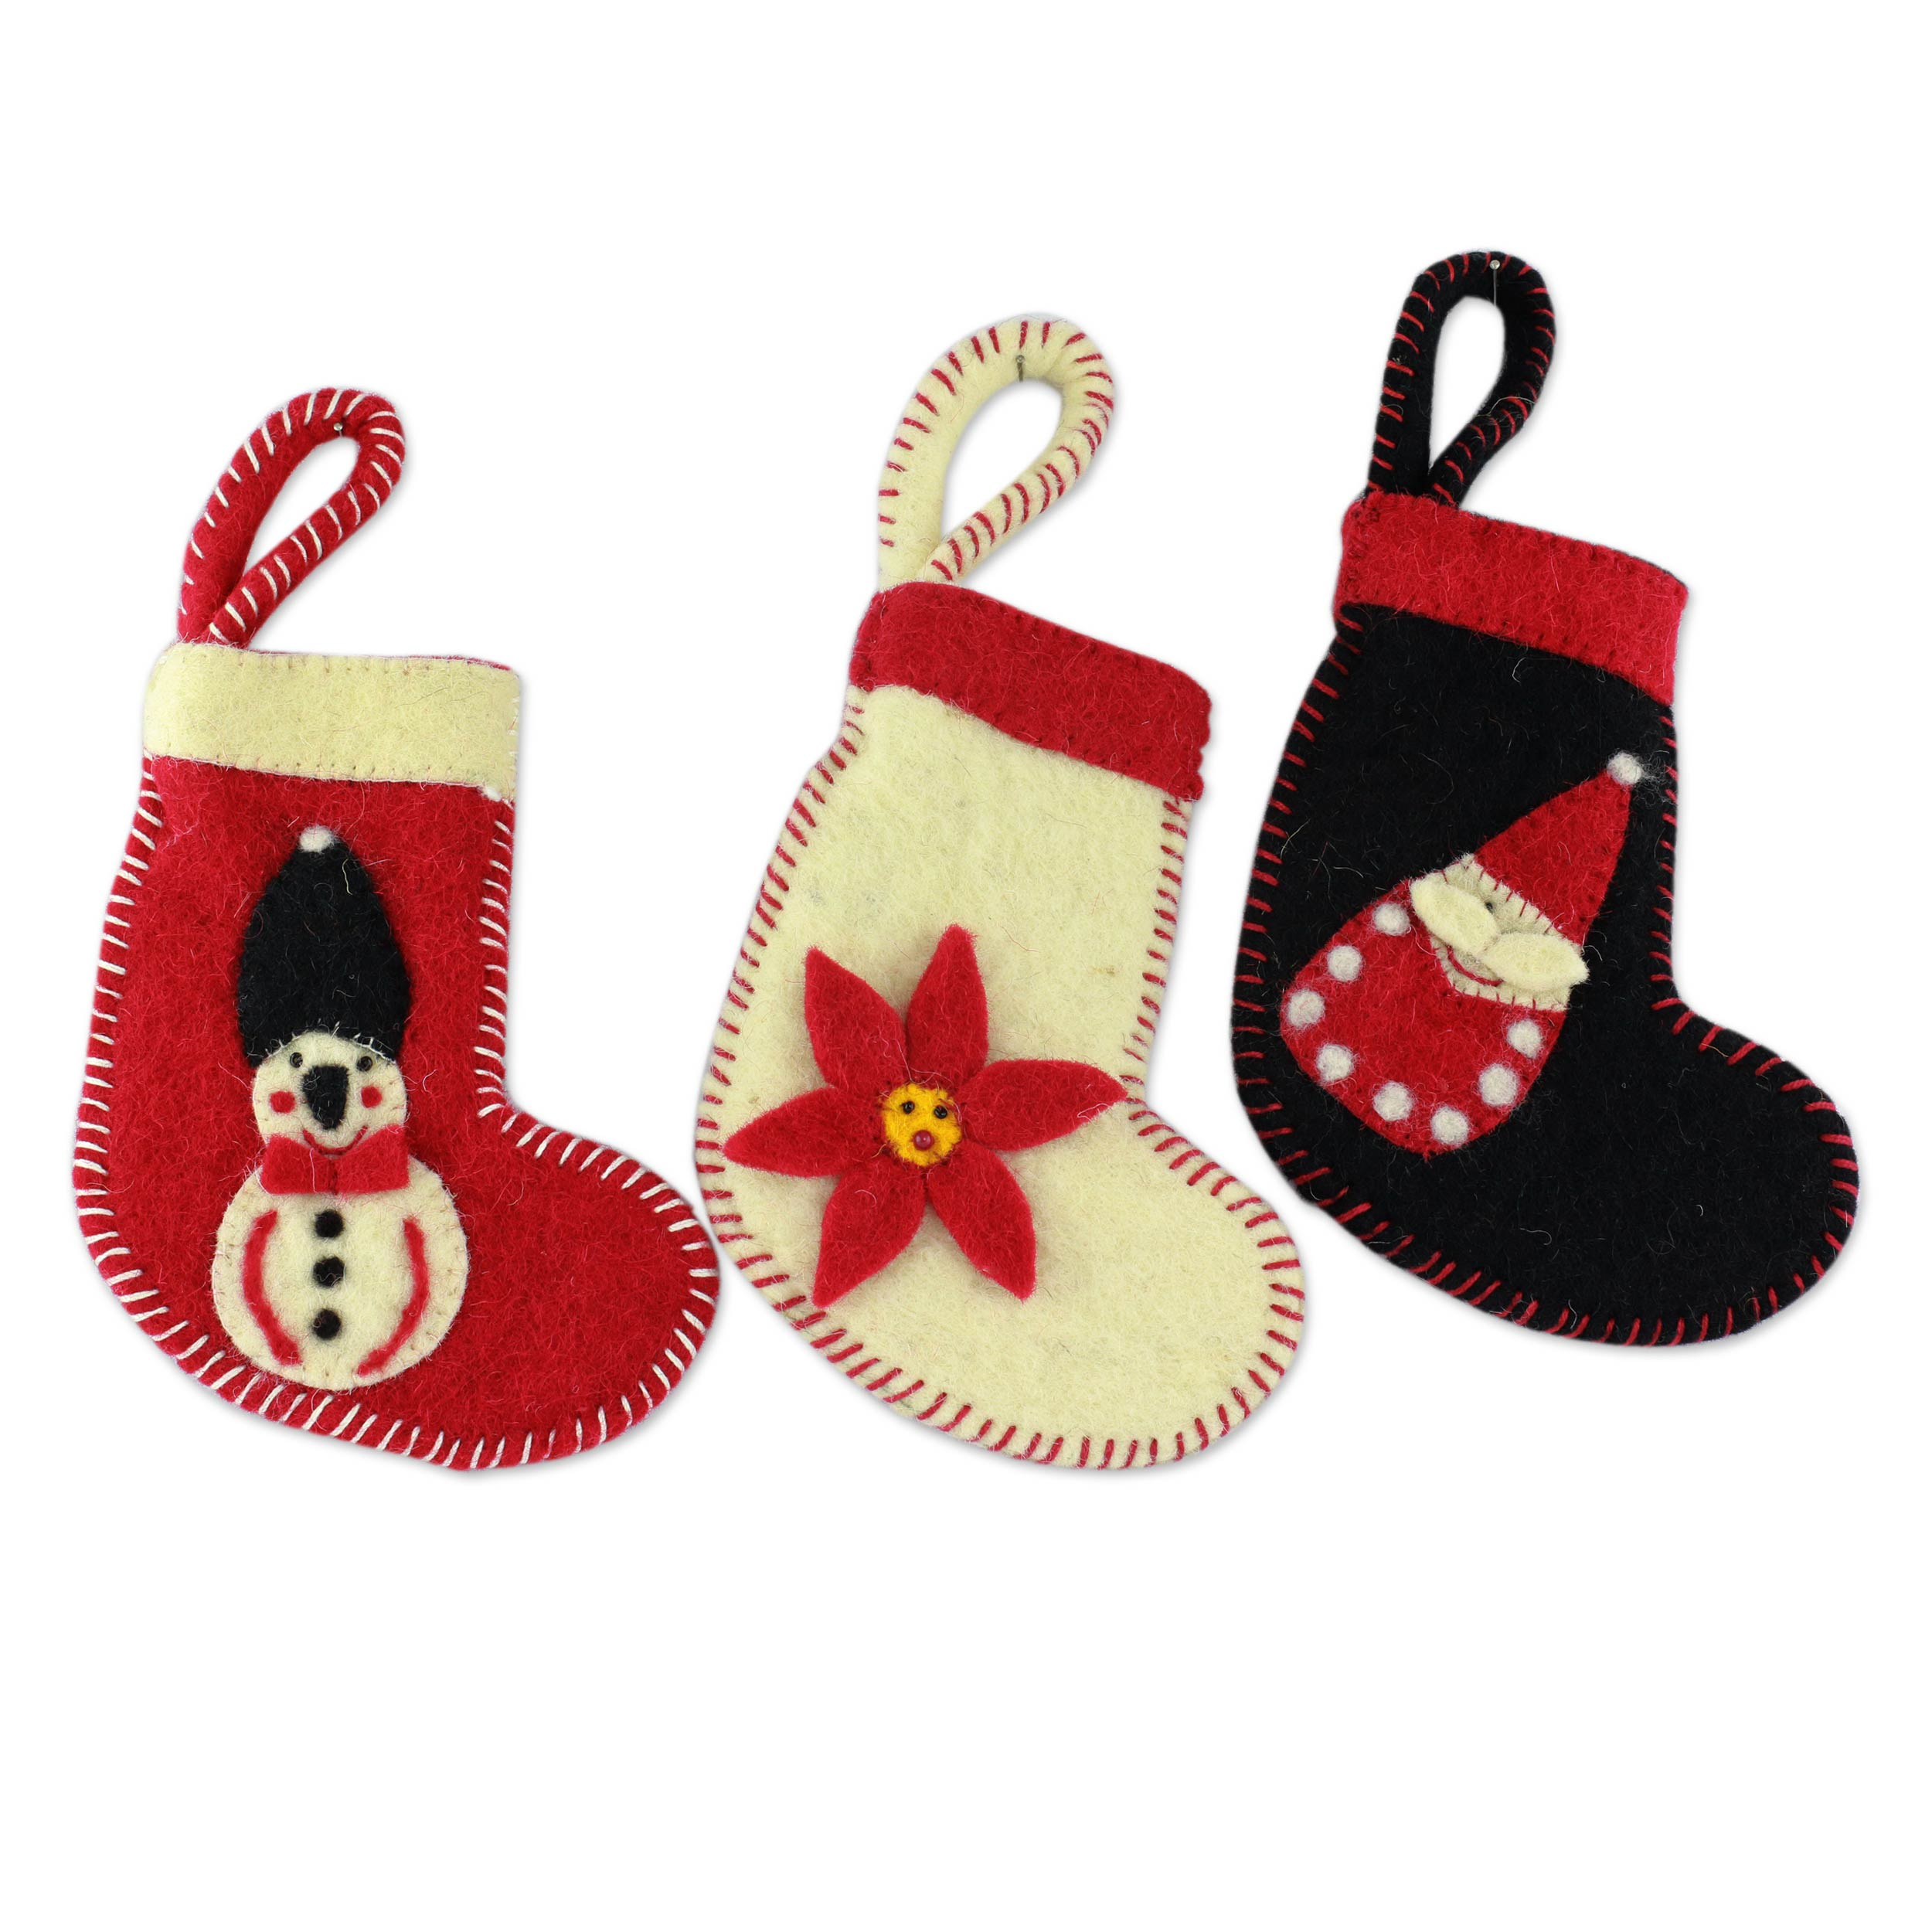 Unicef Market 3 Handcrafted Christmas Stocking Ornaments